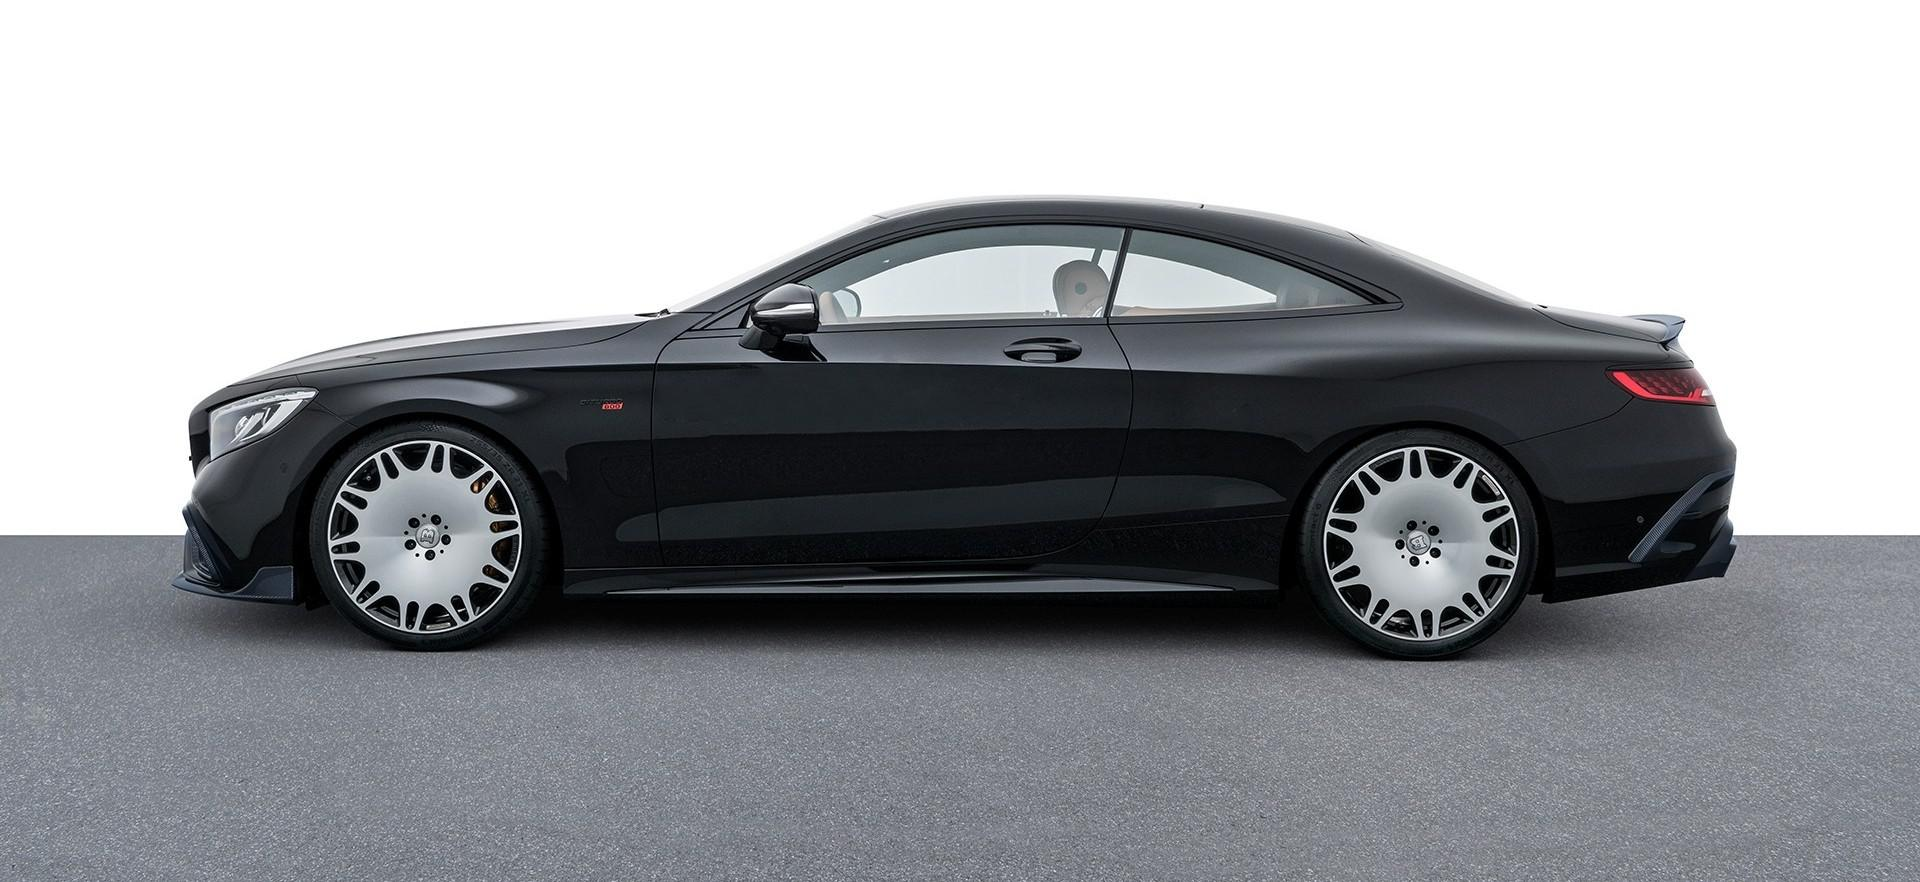 brabus-800-performance-mercedes-benz-s63-4matic-coupe-803-2.jpg